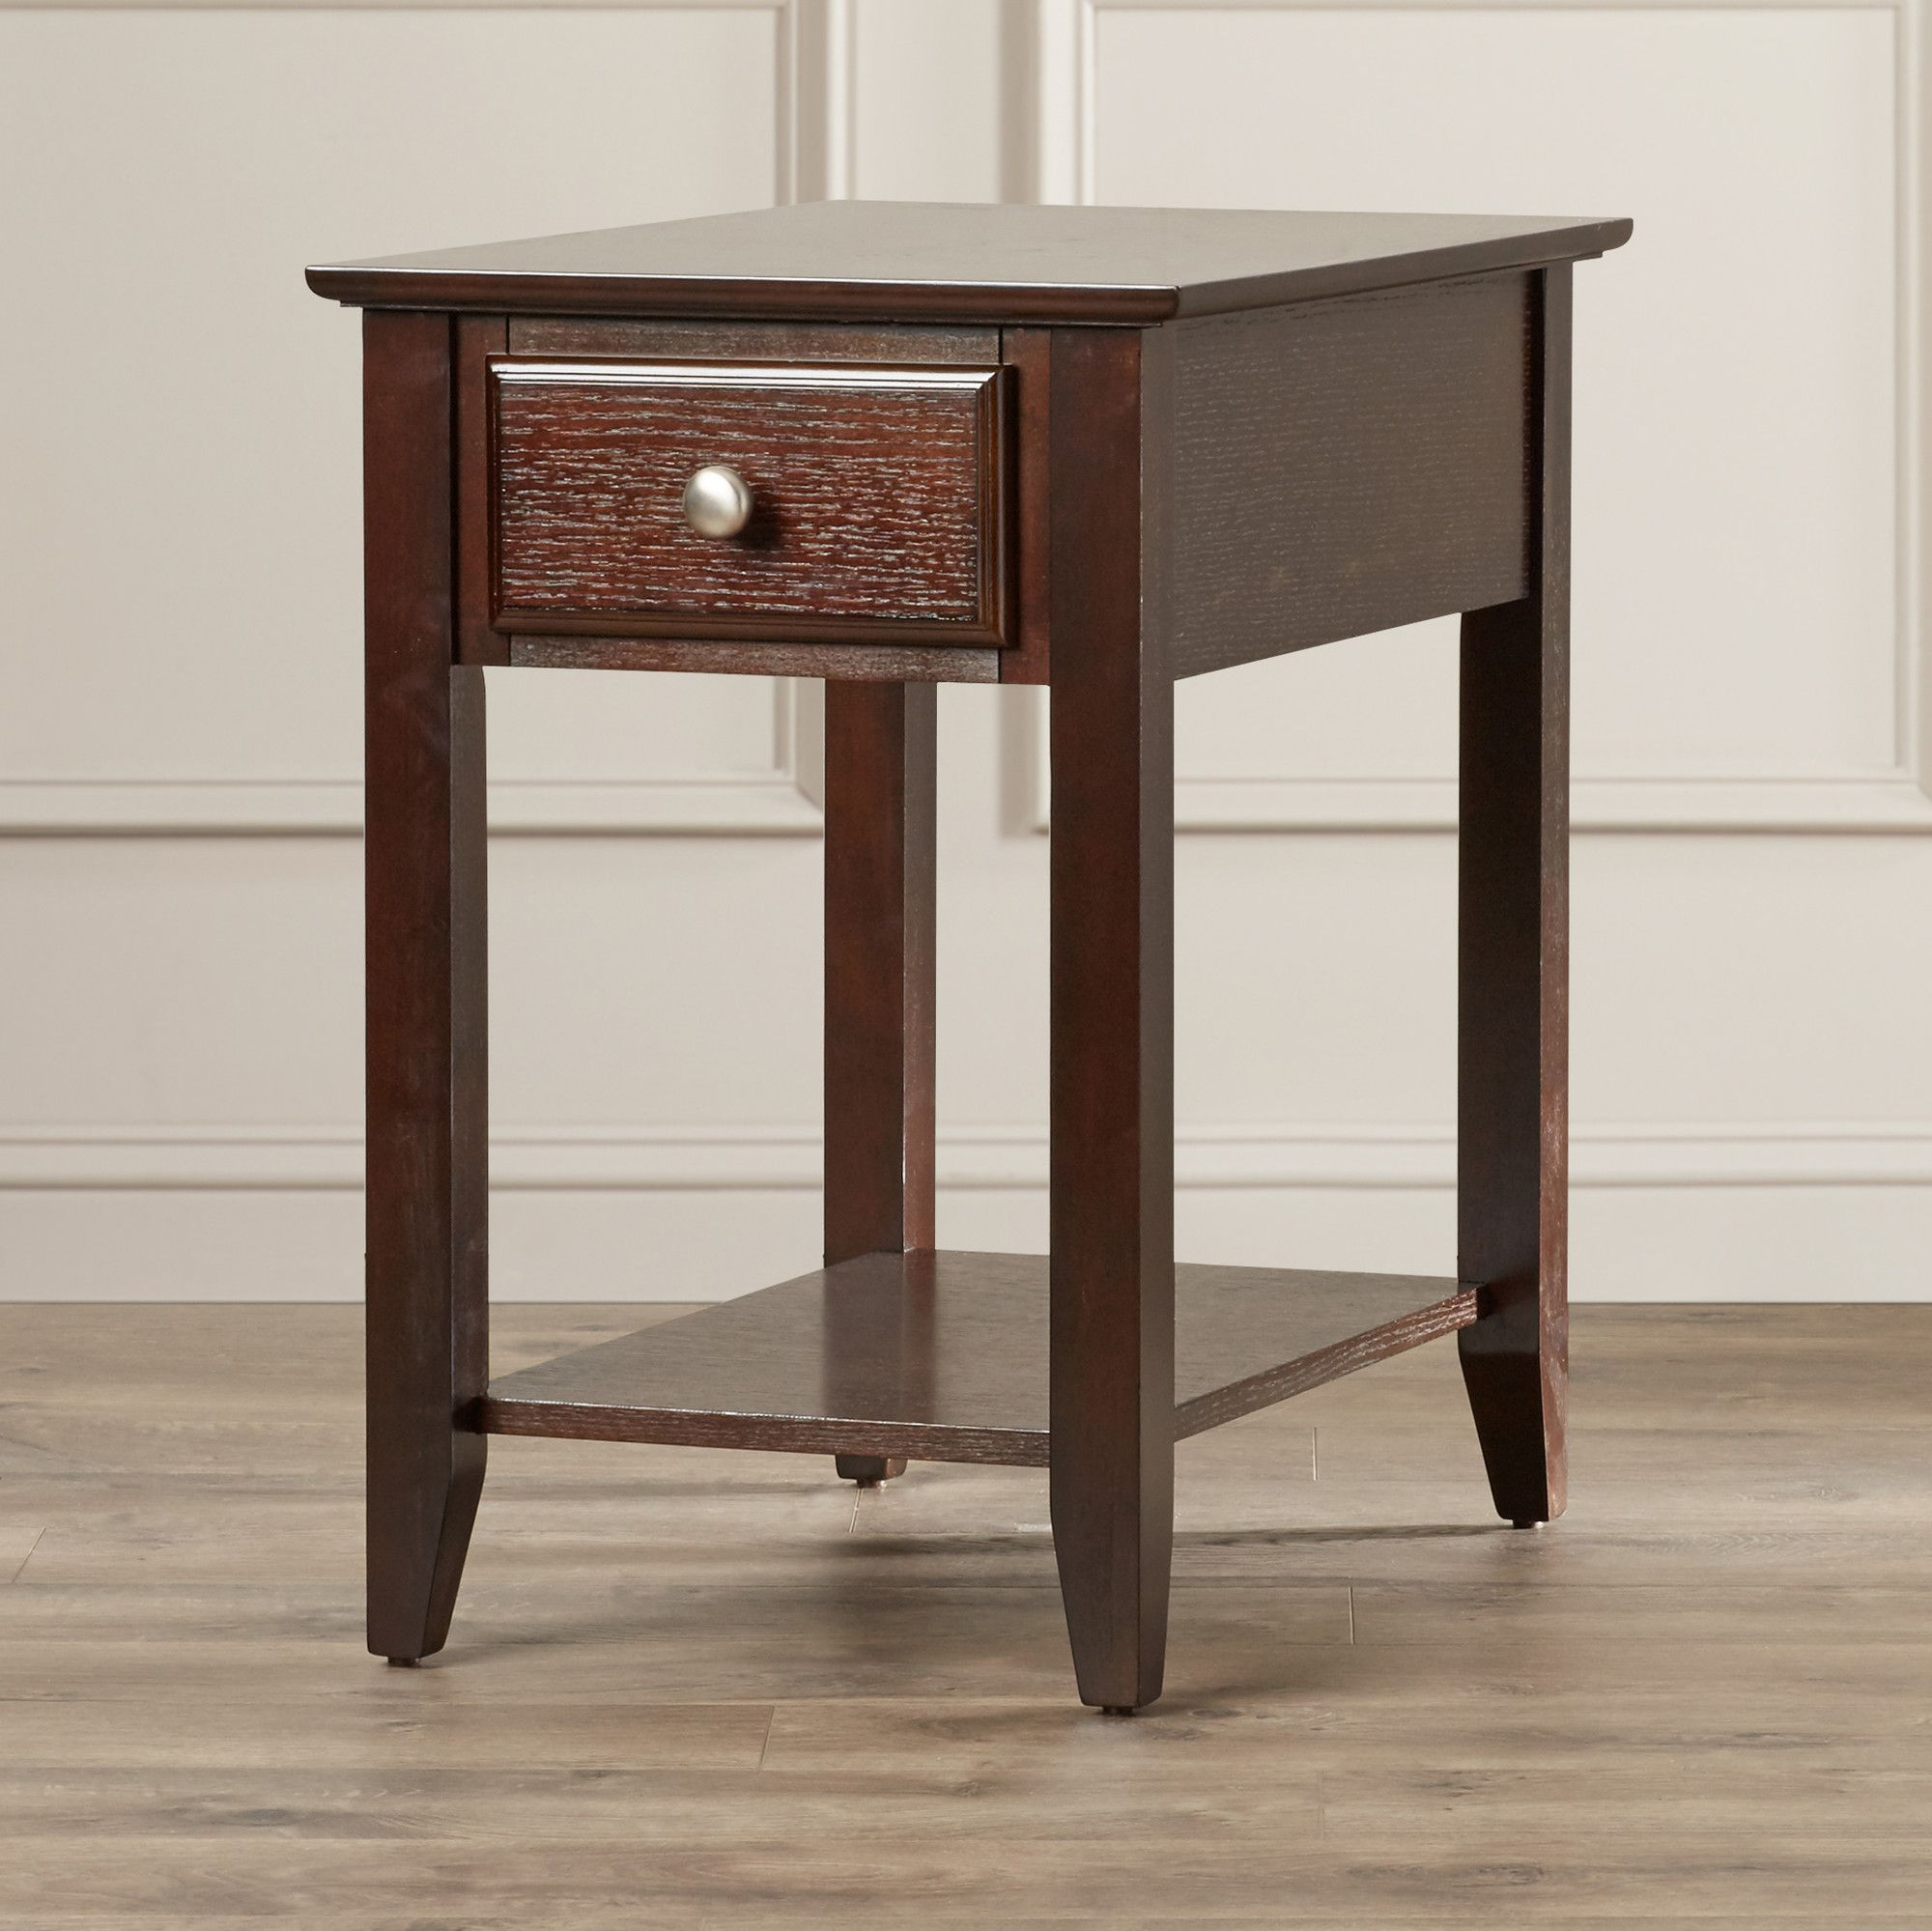 hadley end table with storage furniture tables accent drawer homeware decor small round metal patio red entryway farmhouse dining set ikea console reclaimed wood bar tablecloth